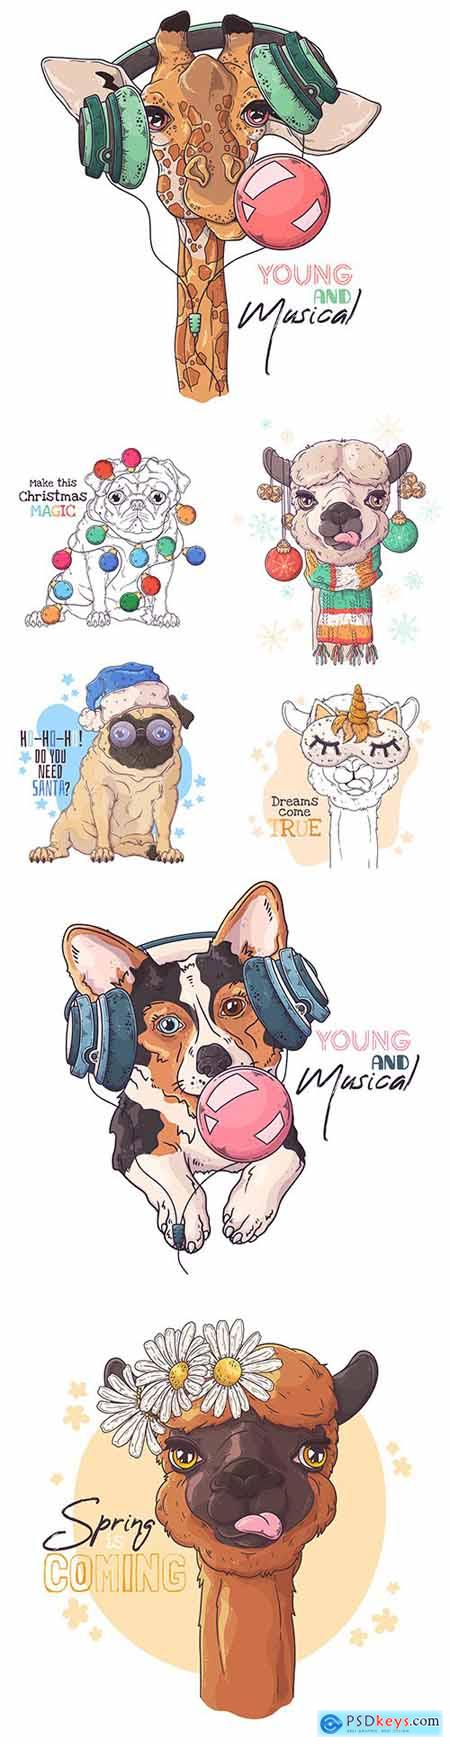 Portrait cute animals in music headphones and New Years accessories